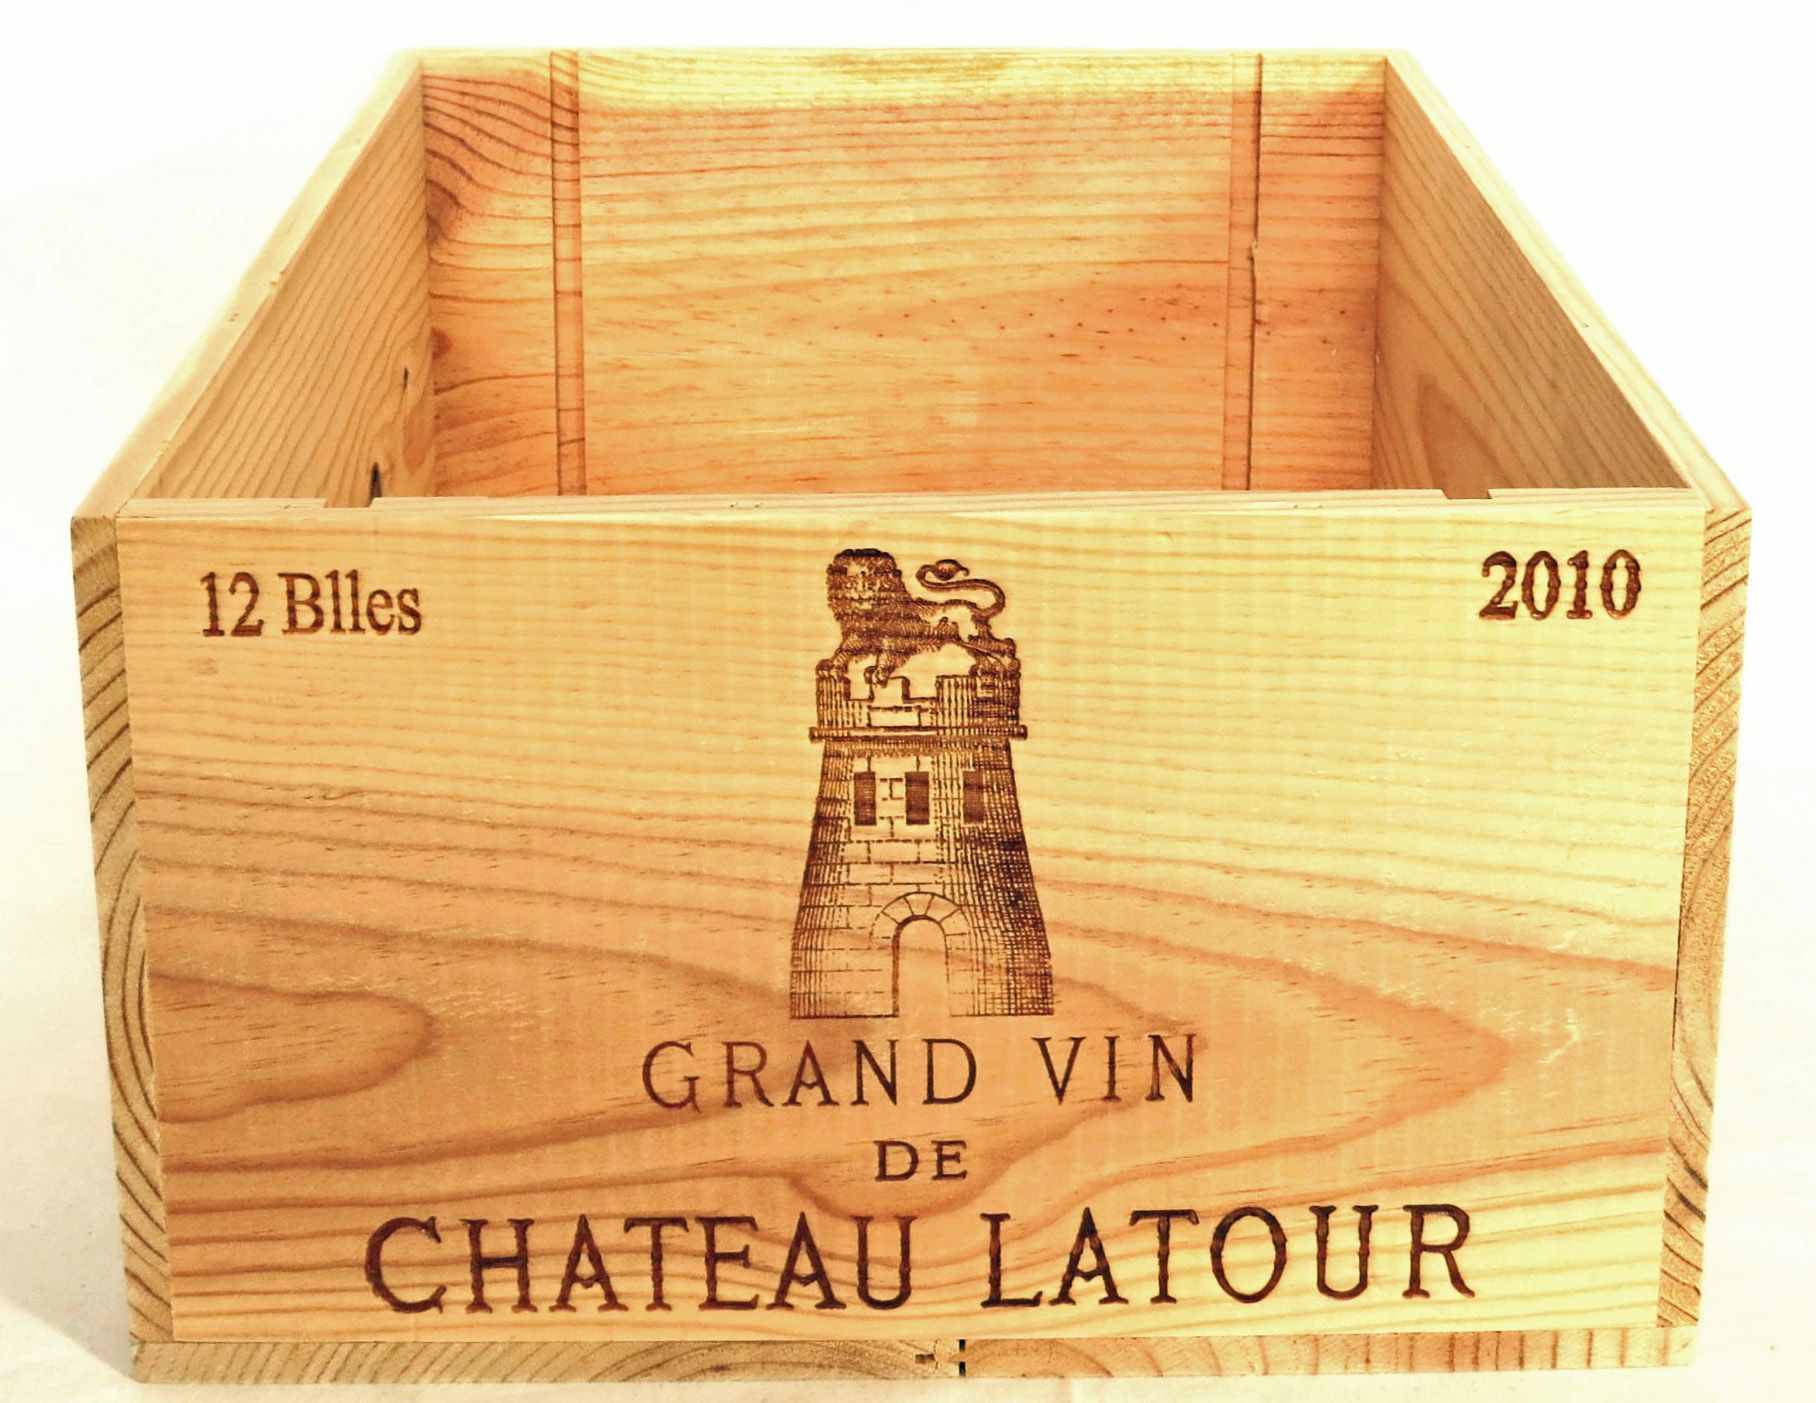 Timber Crates For Sale Authentic 2010 Chateau Latour Wooden Wine Crate Without